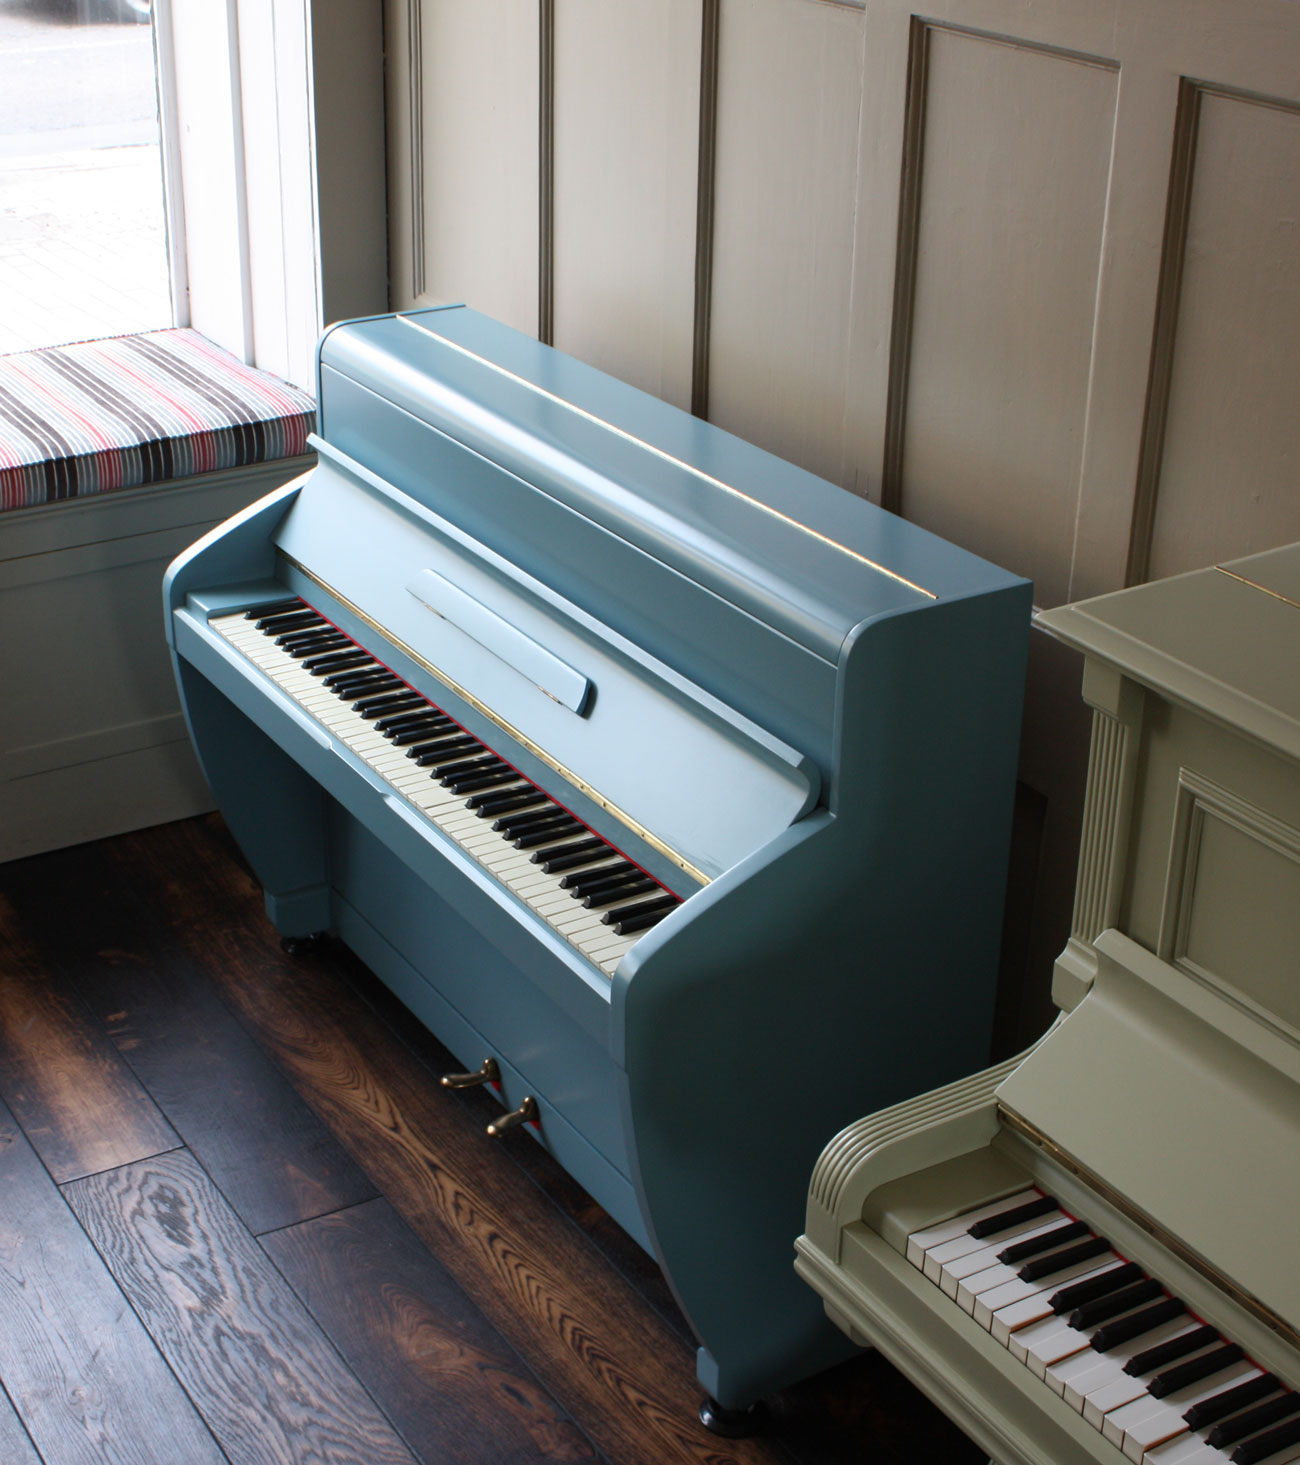 Challen painted upright piano